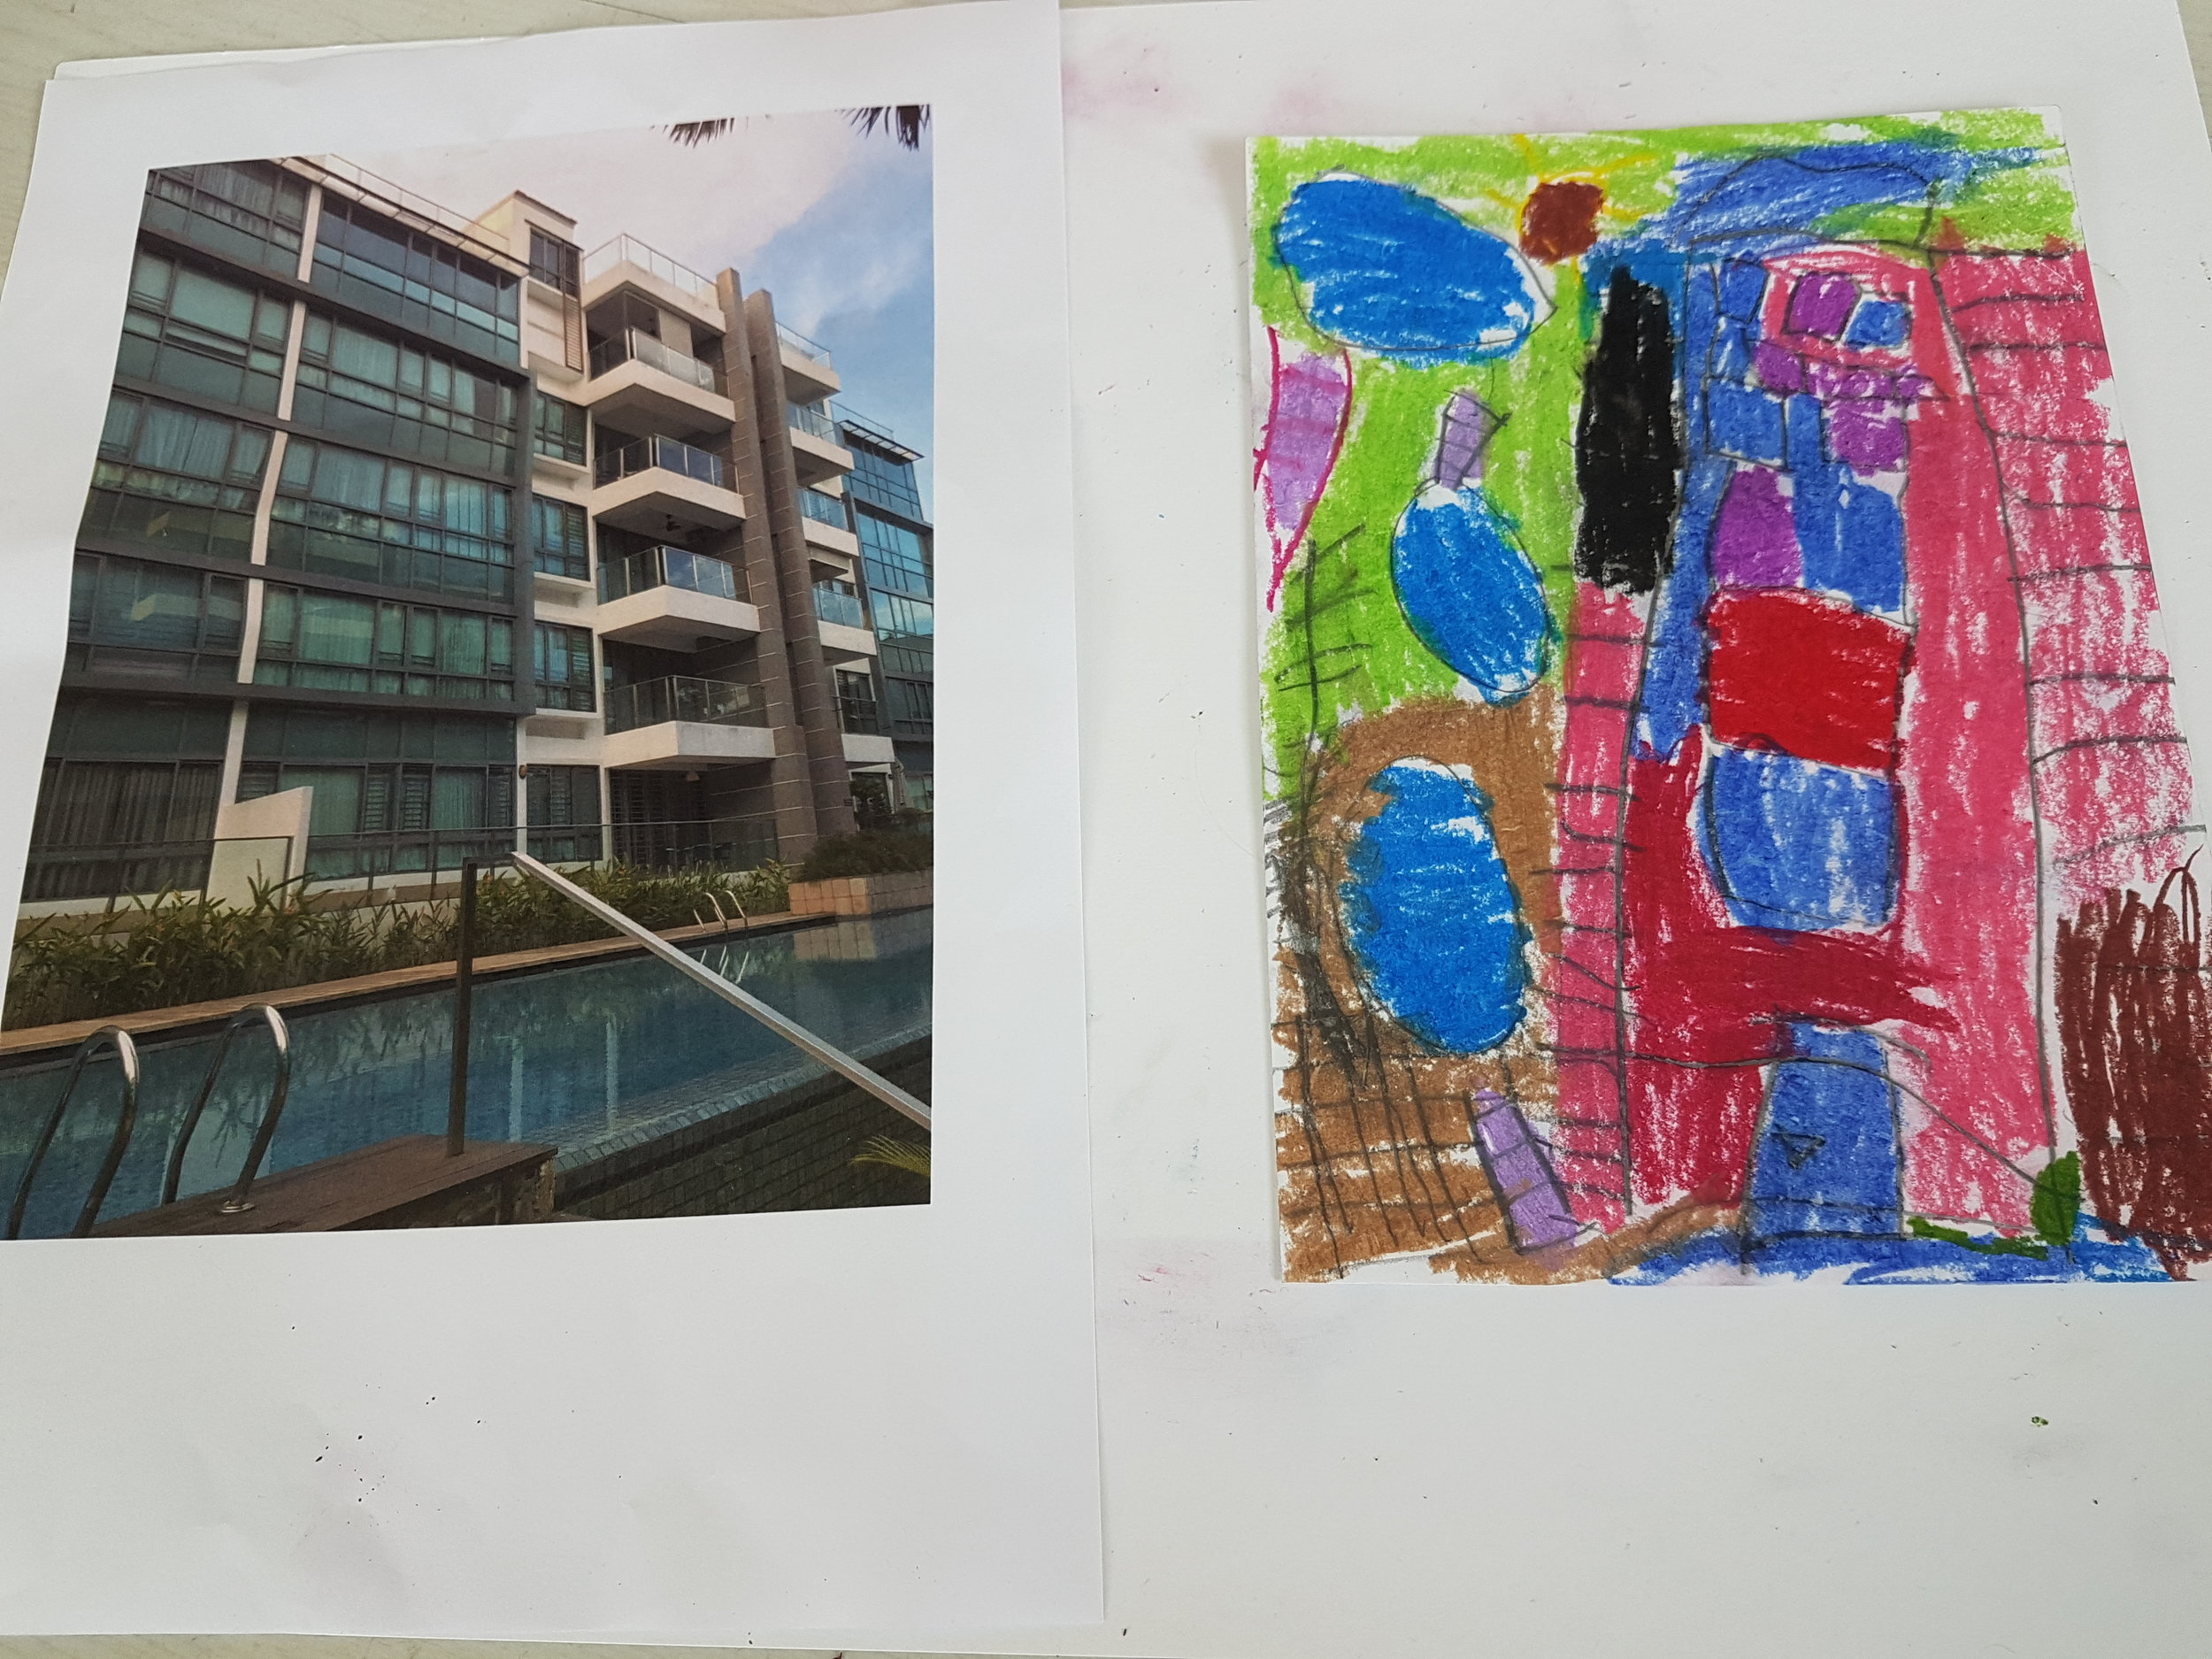 The Layers of Love, Dear You art project. This picture depicts the artist's home and their artistic representation of it from the outside.